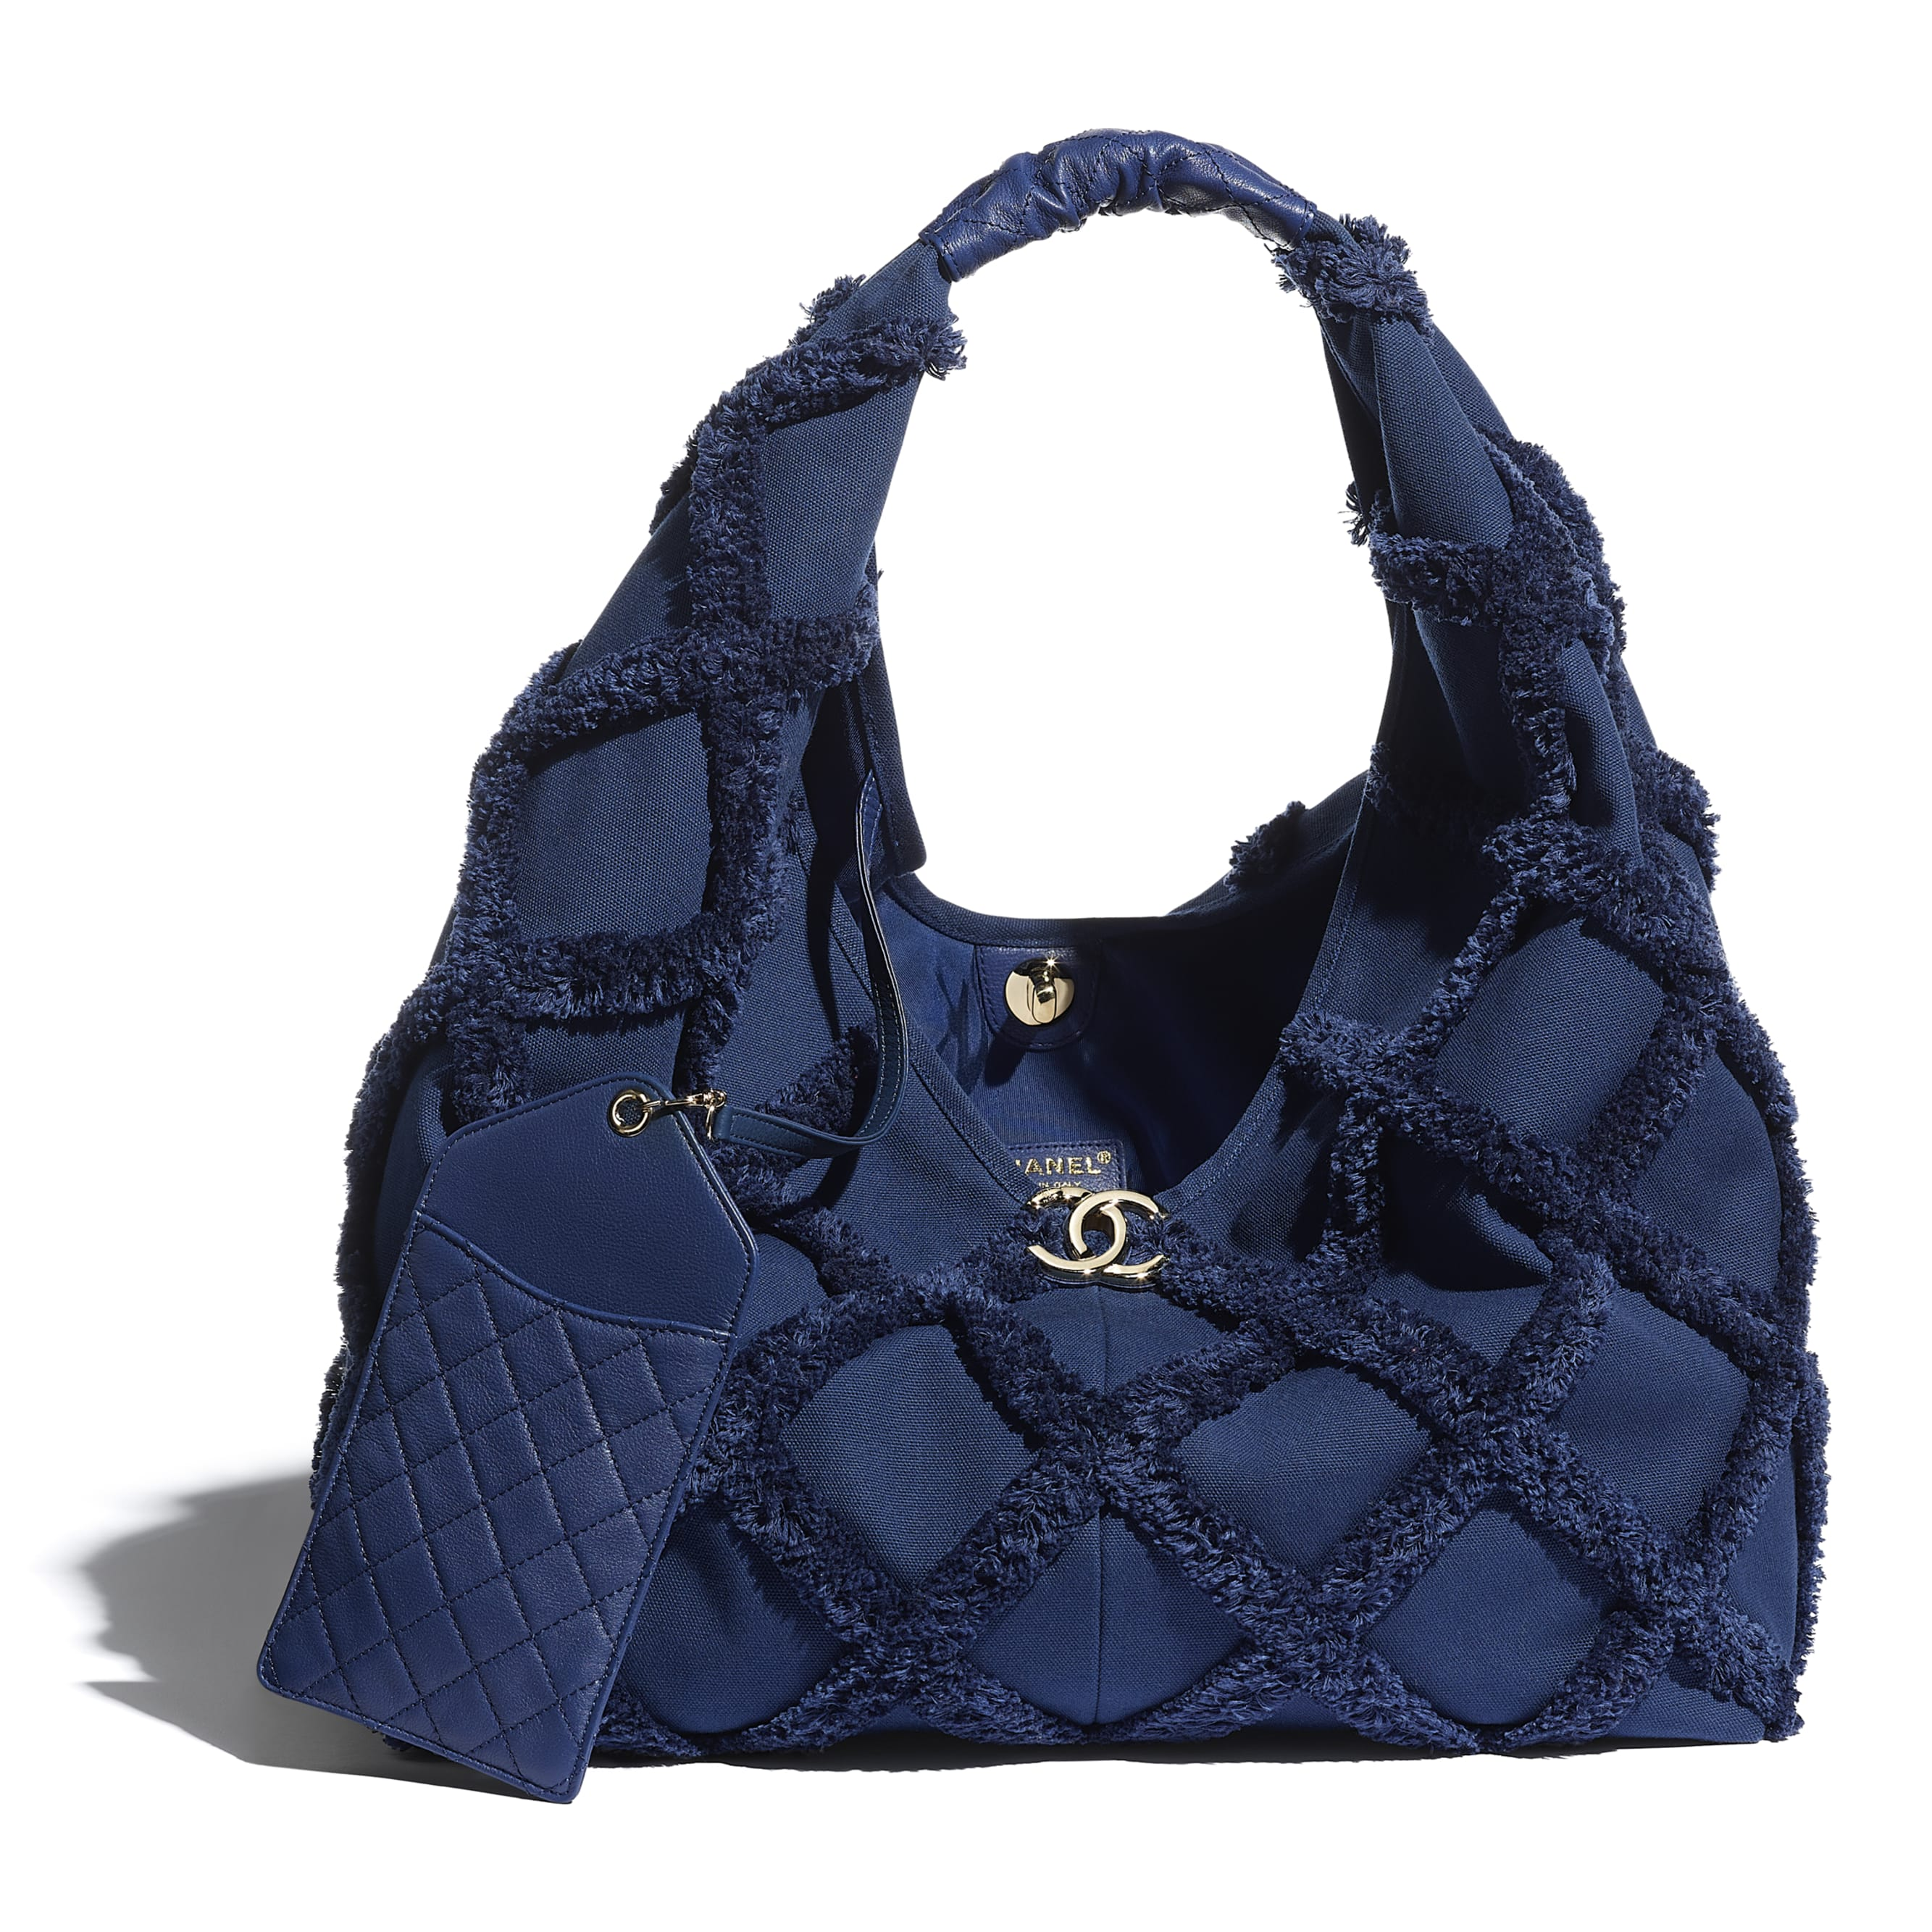 Large Hobo Bag - Navy Blue - Cotton Canvas, Calfskin & Gold-Tone Metal - CHANEL - Other view - see standard sized version